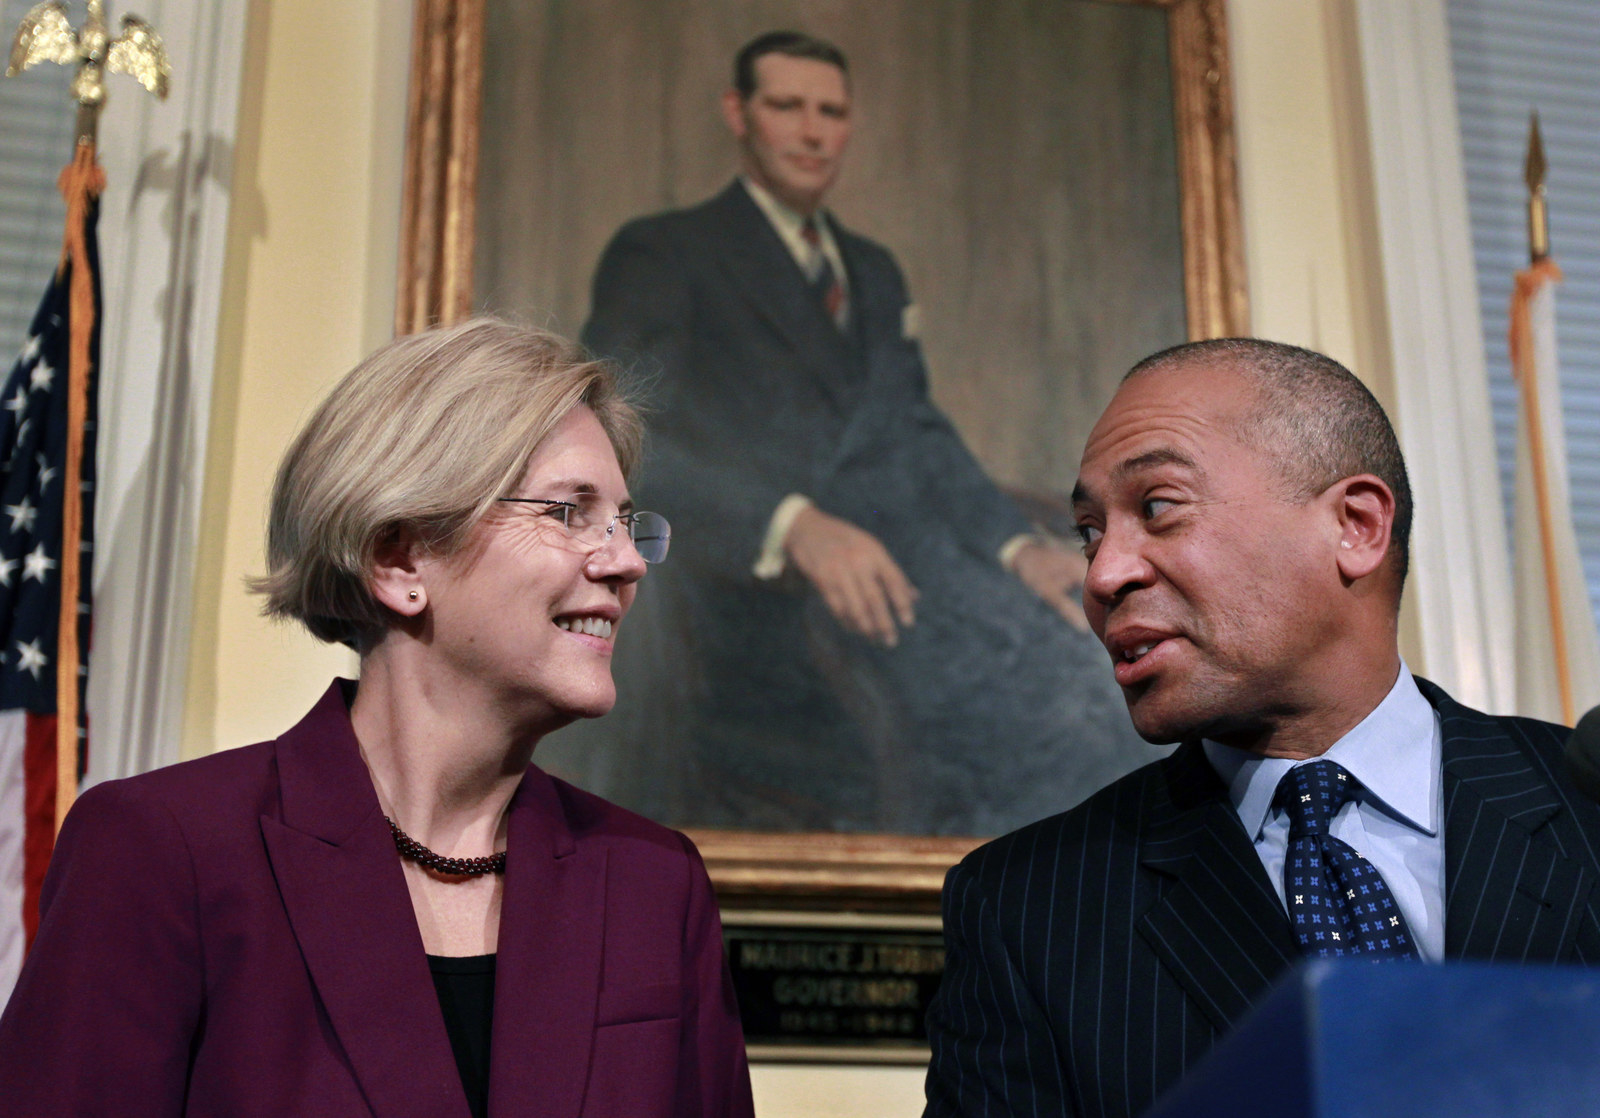 Warren with Patrick at a news conference at the Statehouse in Boston, Thursday, Nov. 8, 2012.